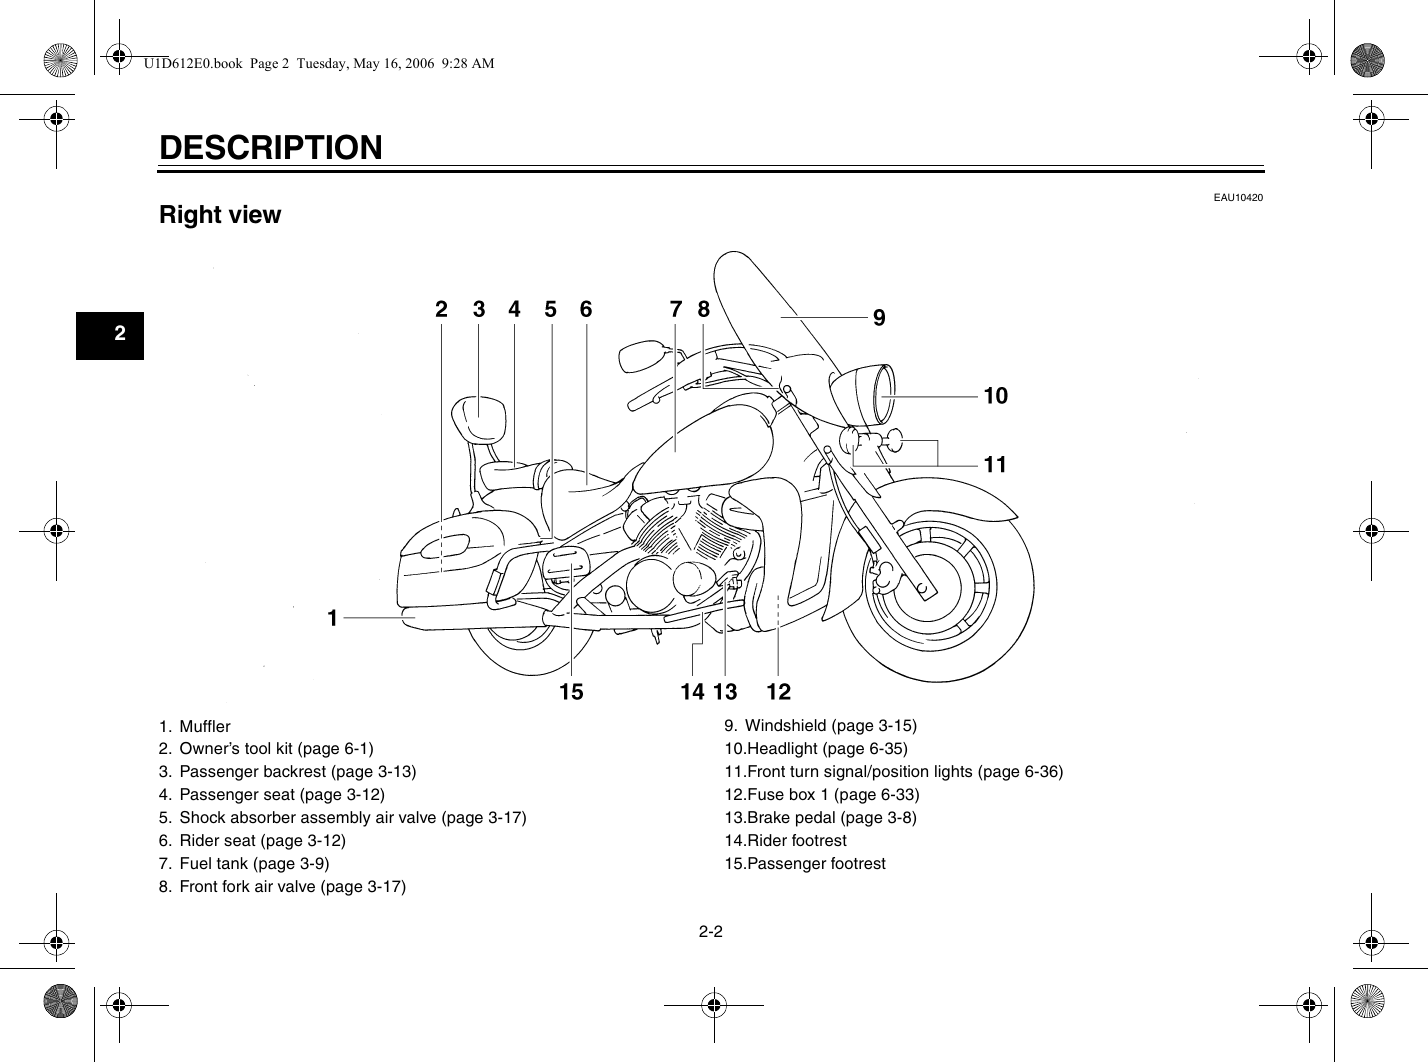 800 Kawasaki Wiring Schematics Vulcan Turn Signal Light Diagram Simple Guide For 2002 Yamaha 650 V Star Suzuki Sv